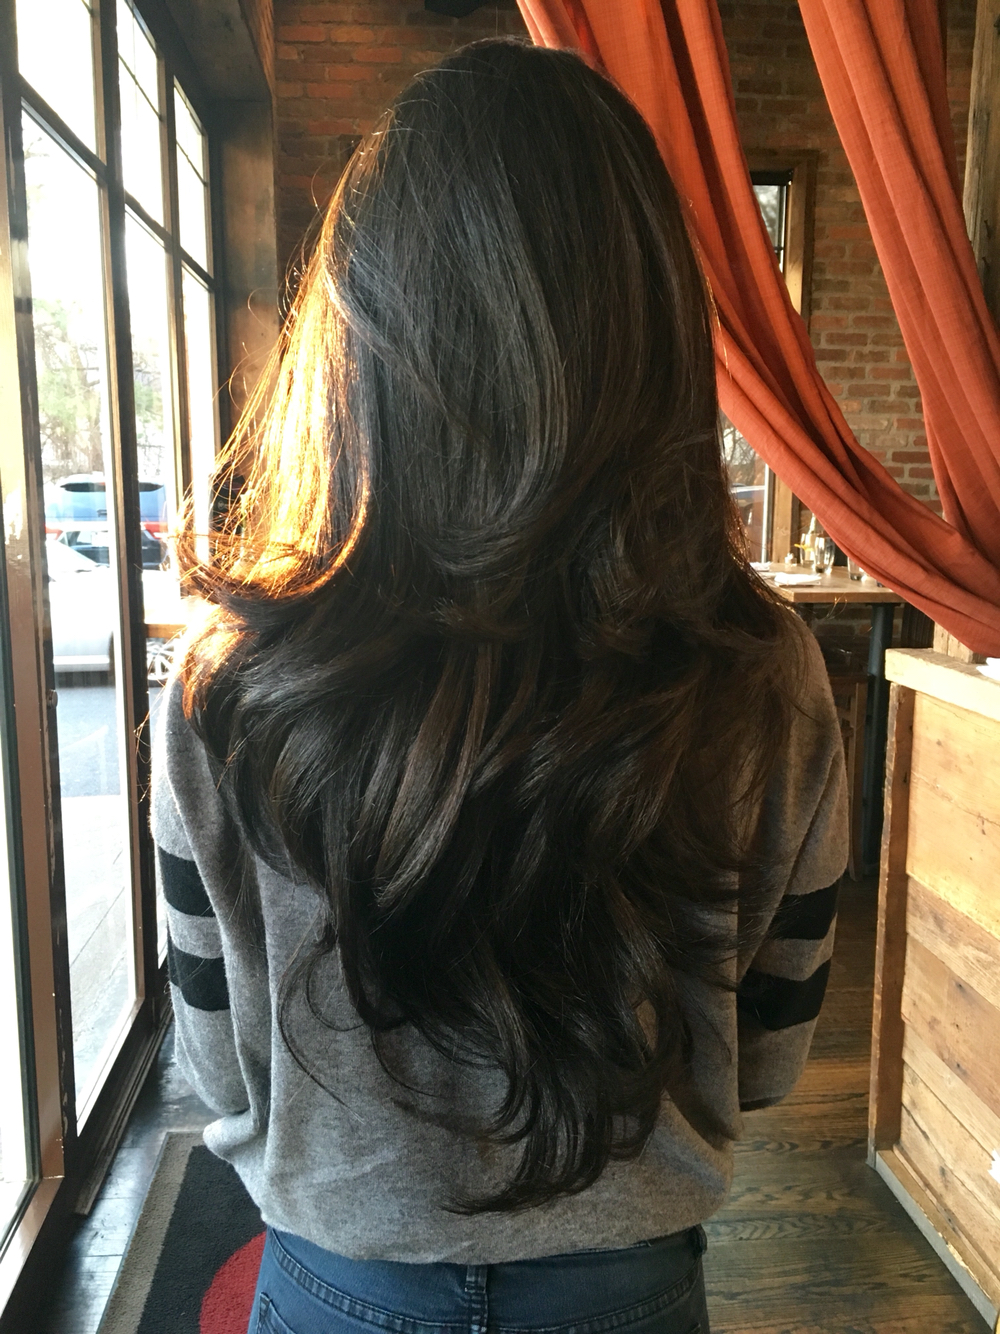 Very Long Hair Layers The Longest Layer Seems A Comparatively Small Amount Of Hair Long Hair Styles Brown Wavy Hair Hair Styles